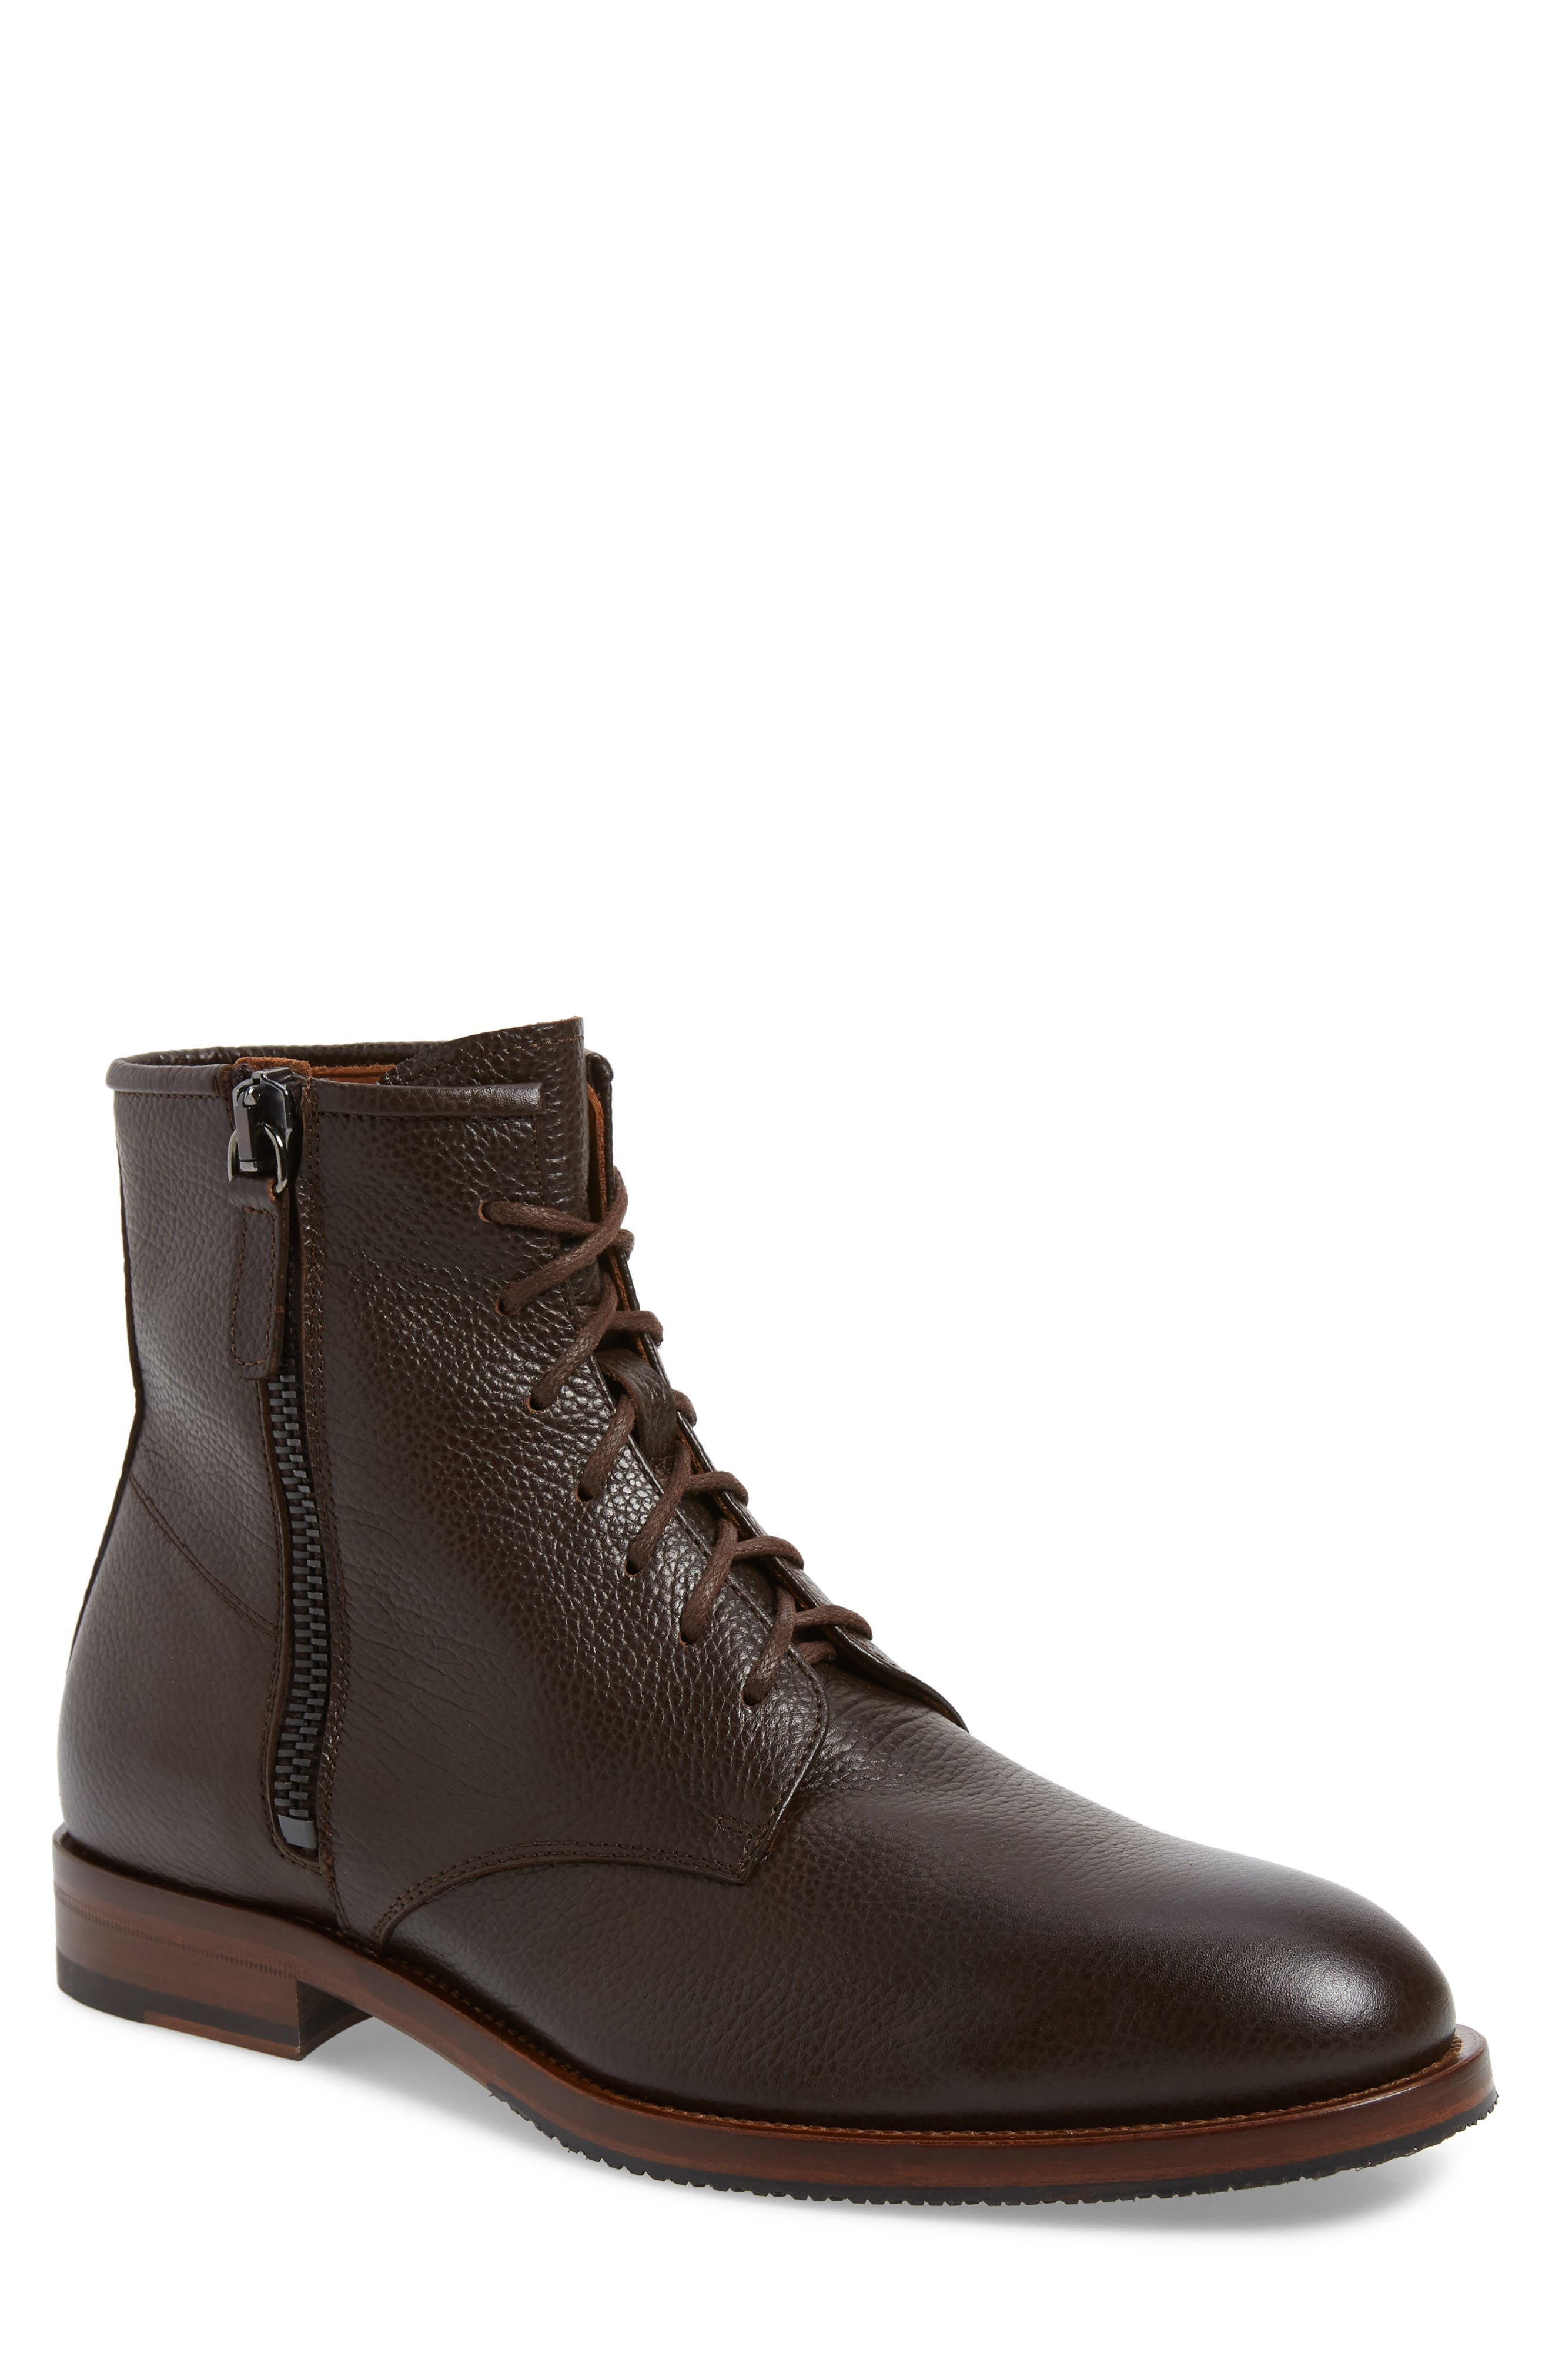 Aquatalia Vladimir Weatherproof Boot, Brown